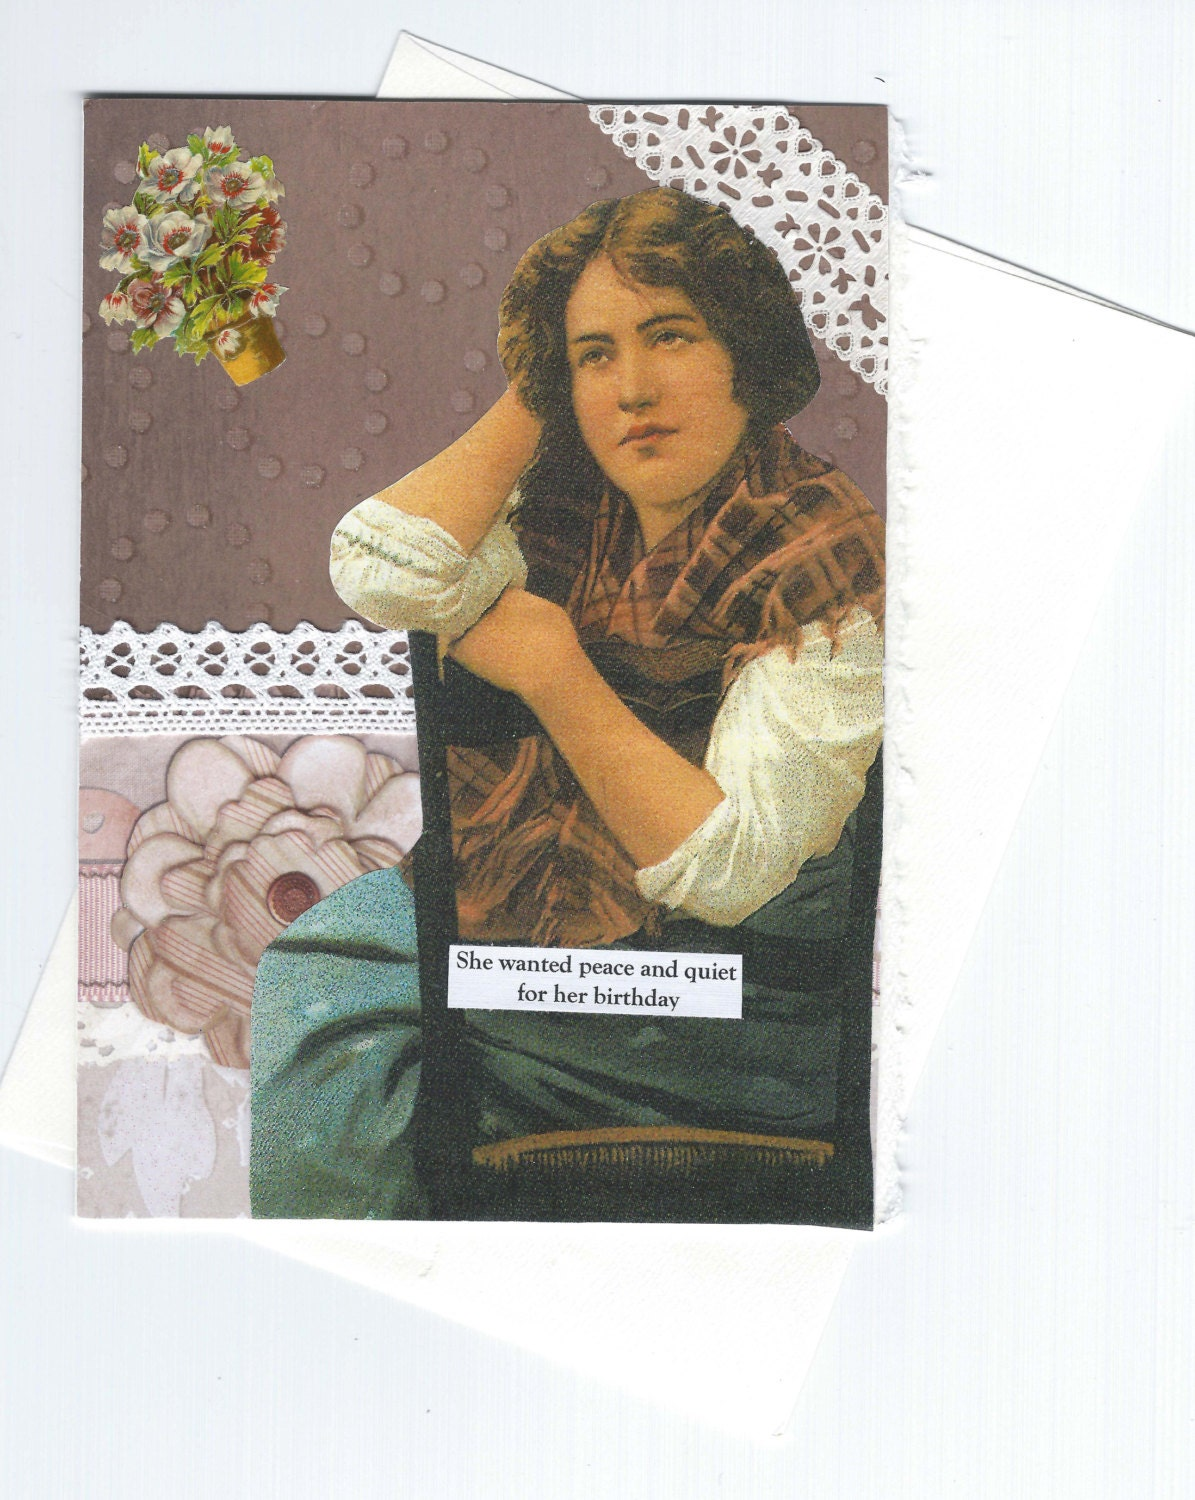 Plaintive Birthday Card With Victorian Woman Mocha Brown and Pink Collage Art - Gimme Some Peace - rhodyart